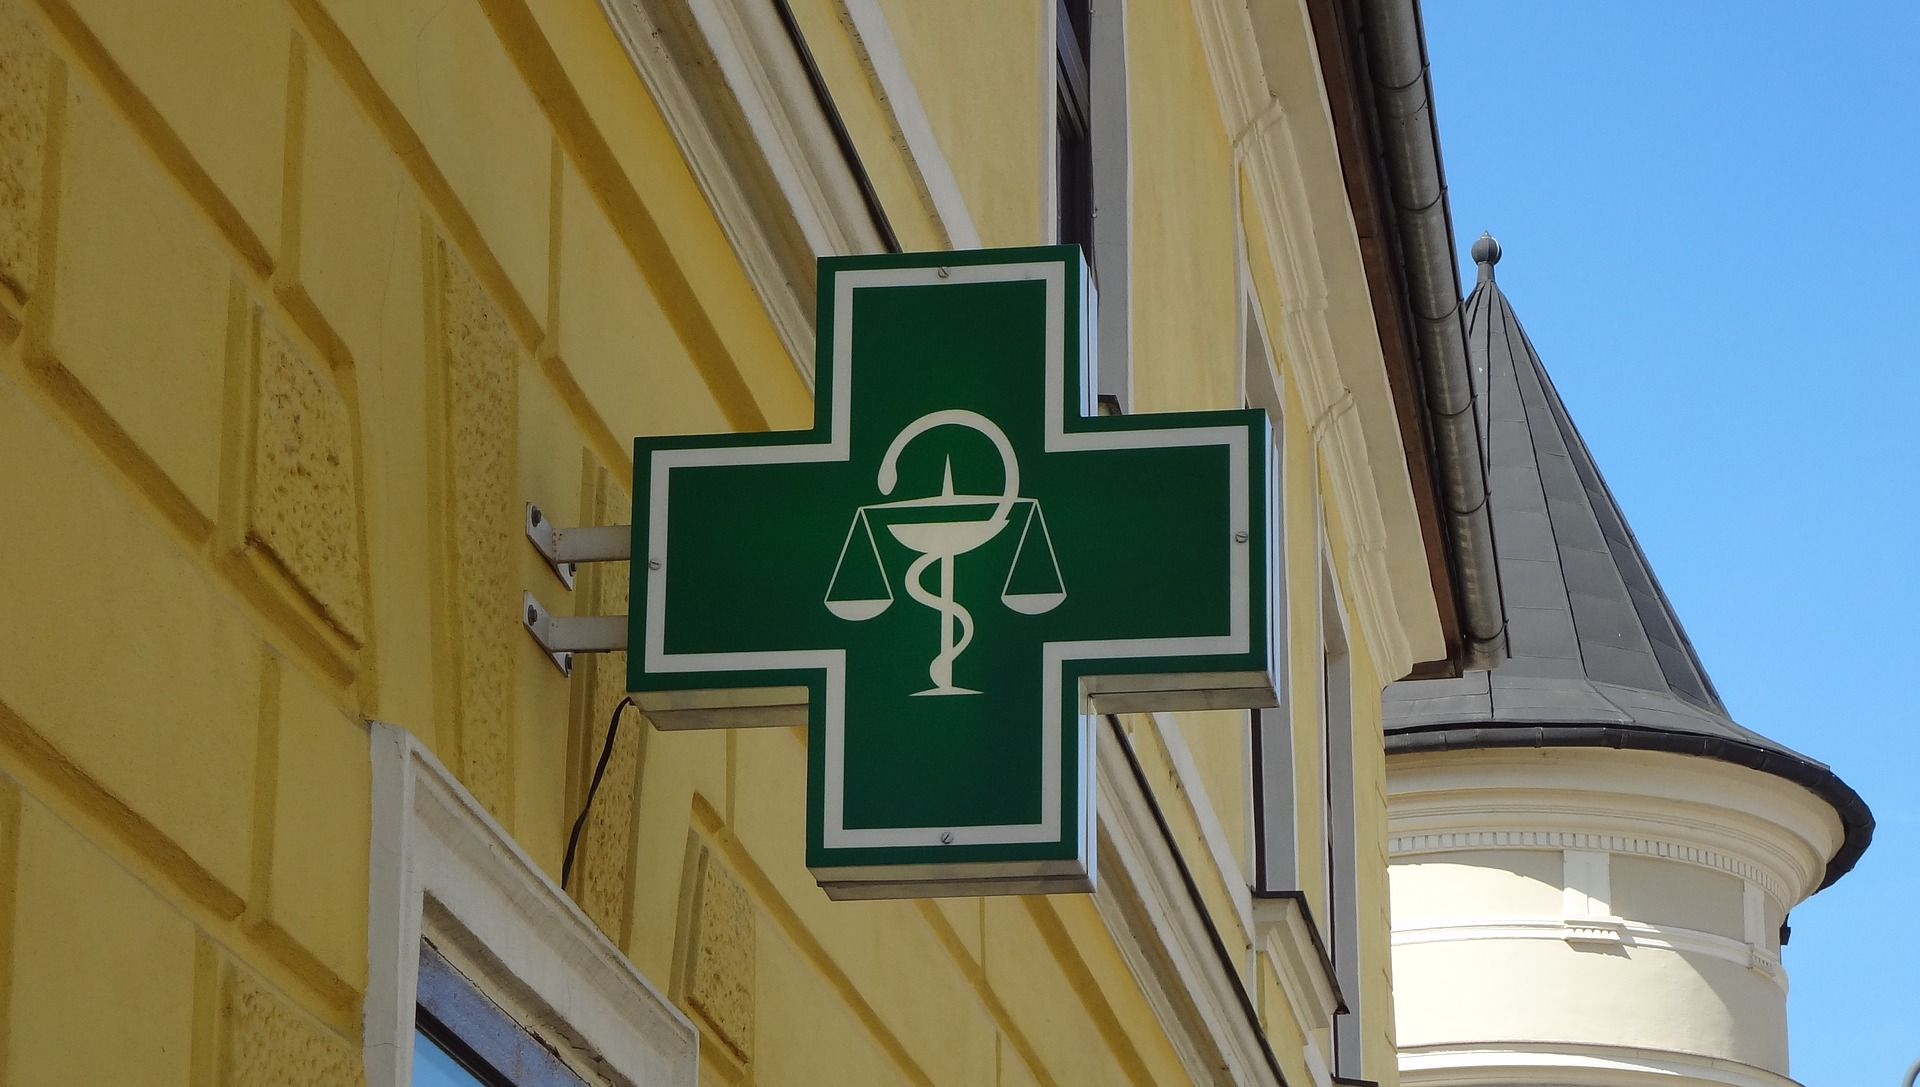 logo-pharmacy-3215049_1920.jpg